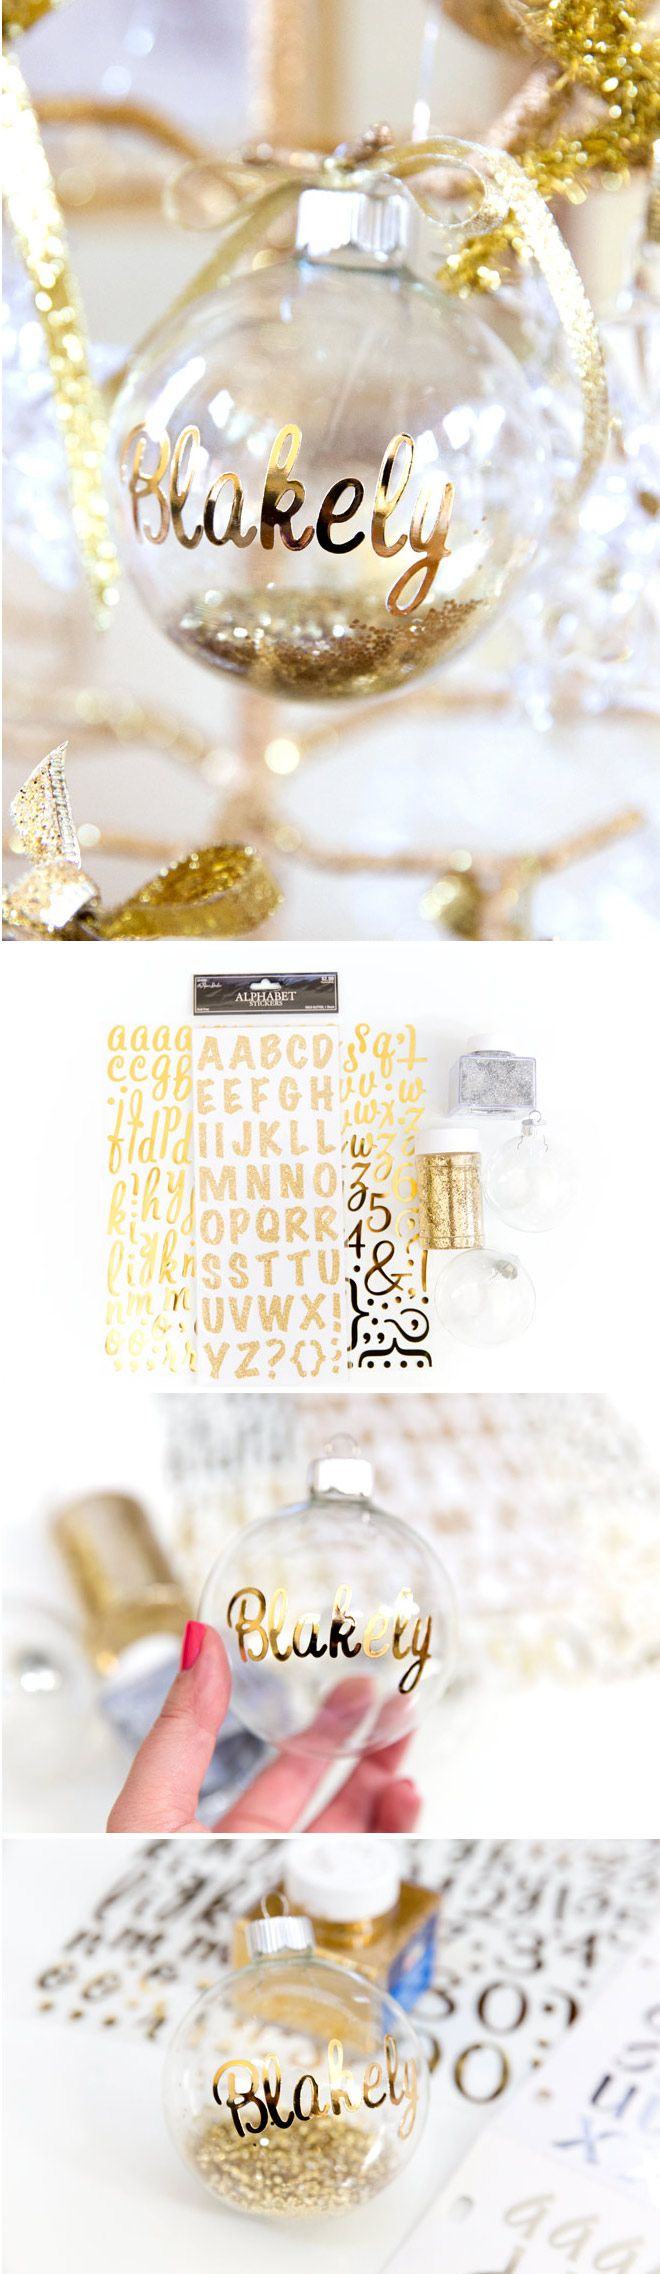 Lawyer christmas ornaments - Diy Personalized Ornaments For Christmas